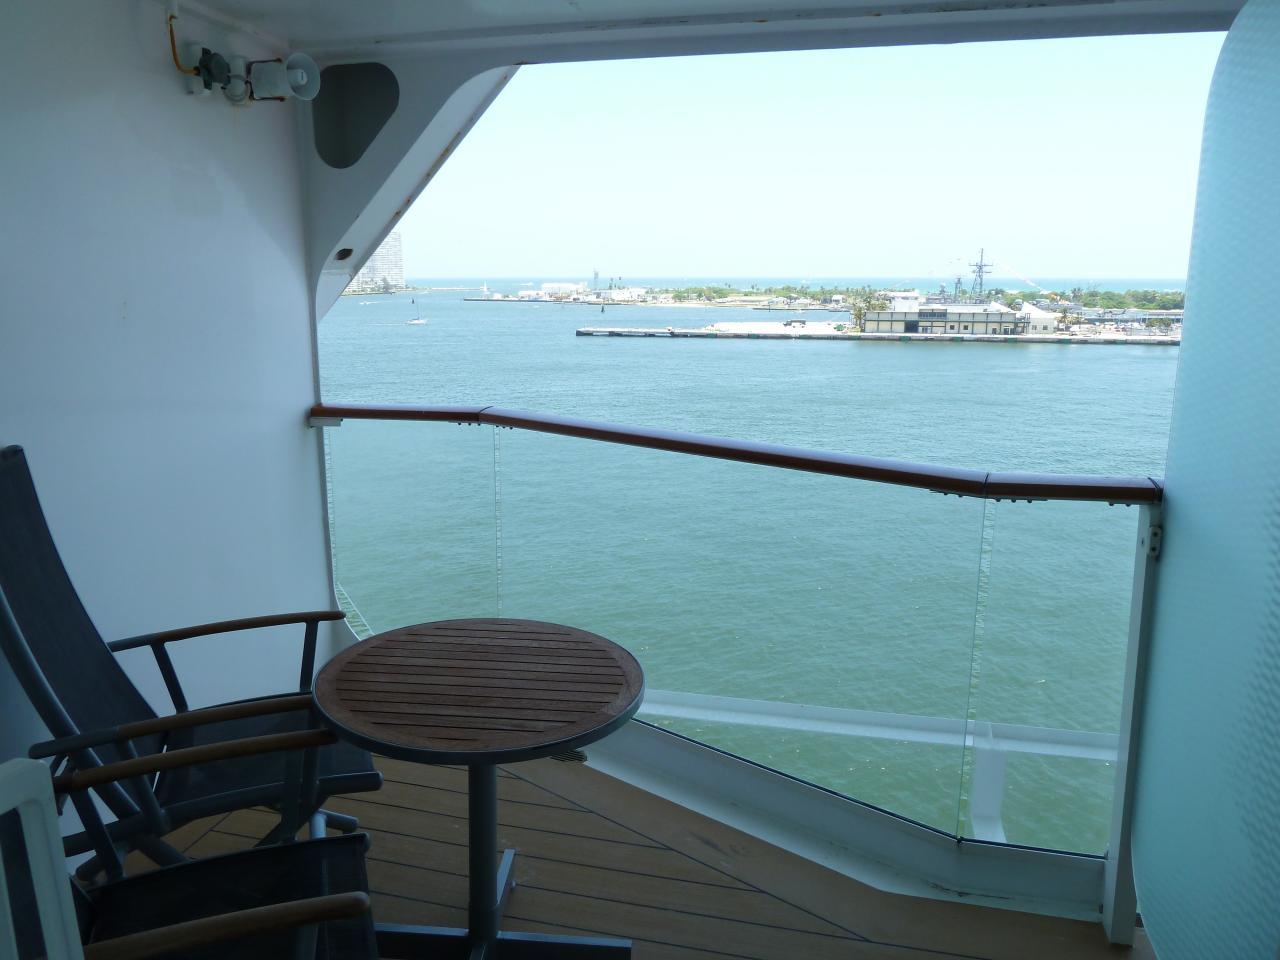 Vista deck celebrity equinox reviews